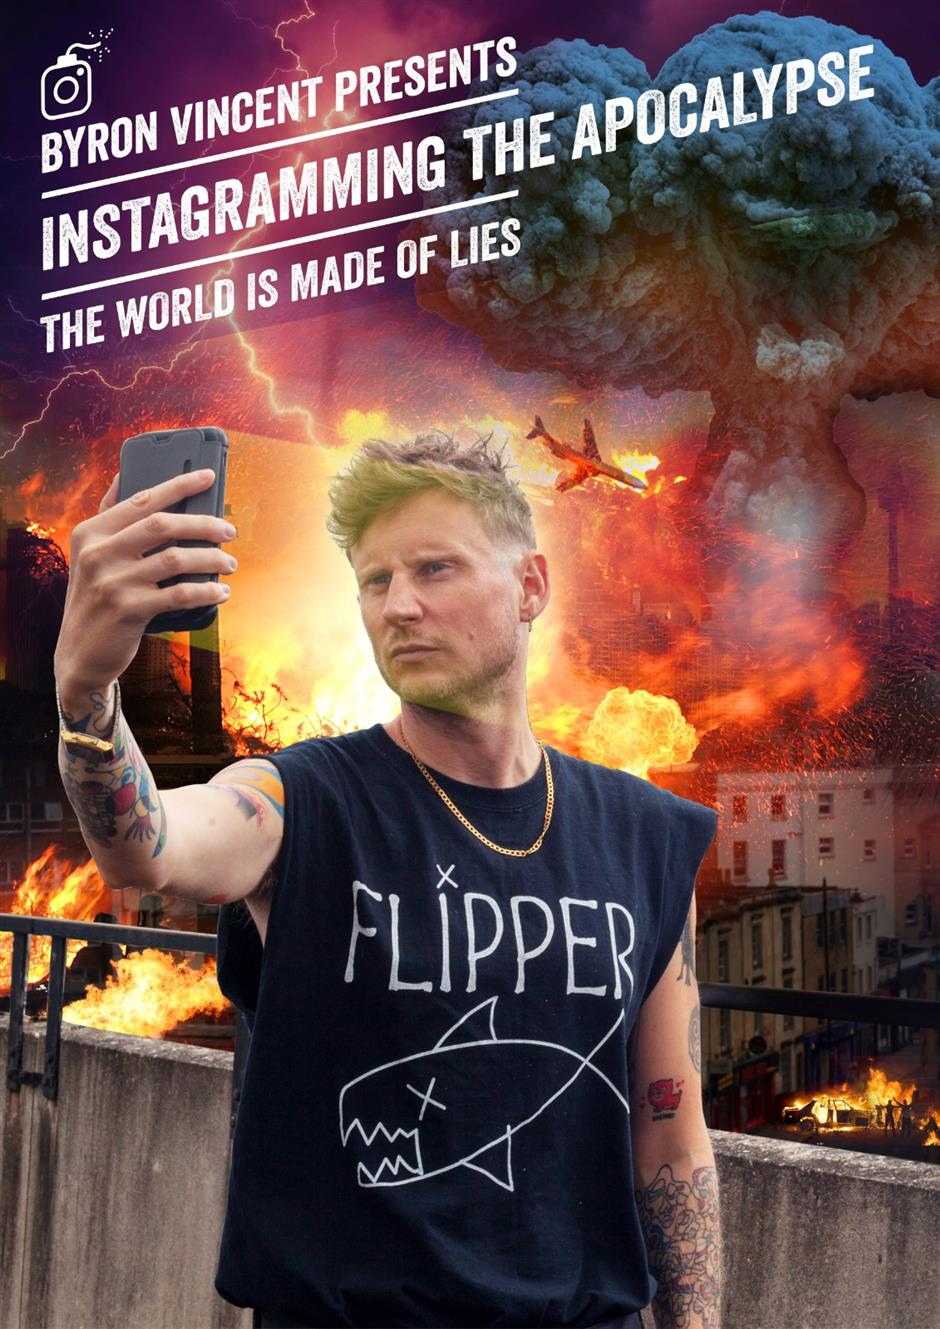 Byron Vincent: Instagramming the Apocalypse